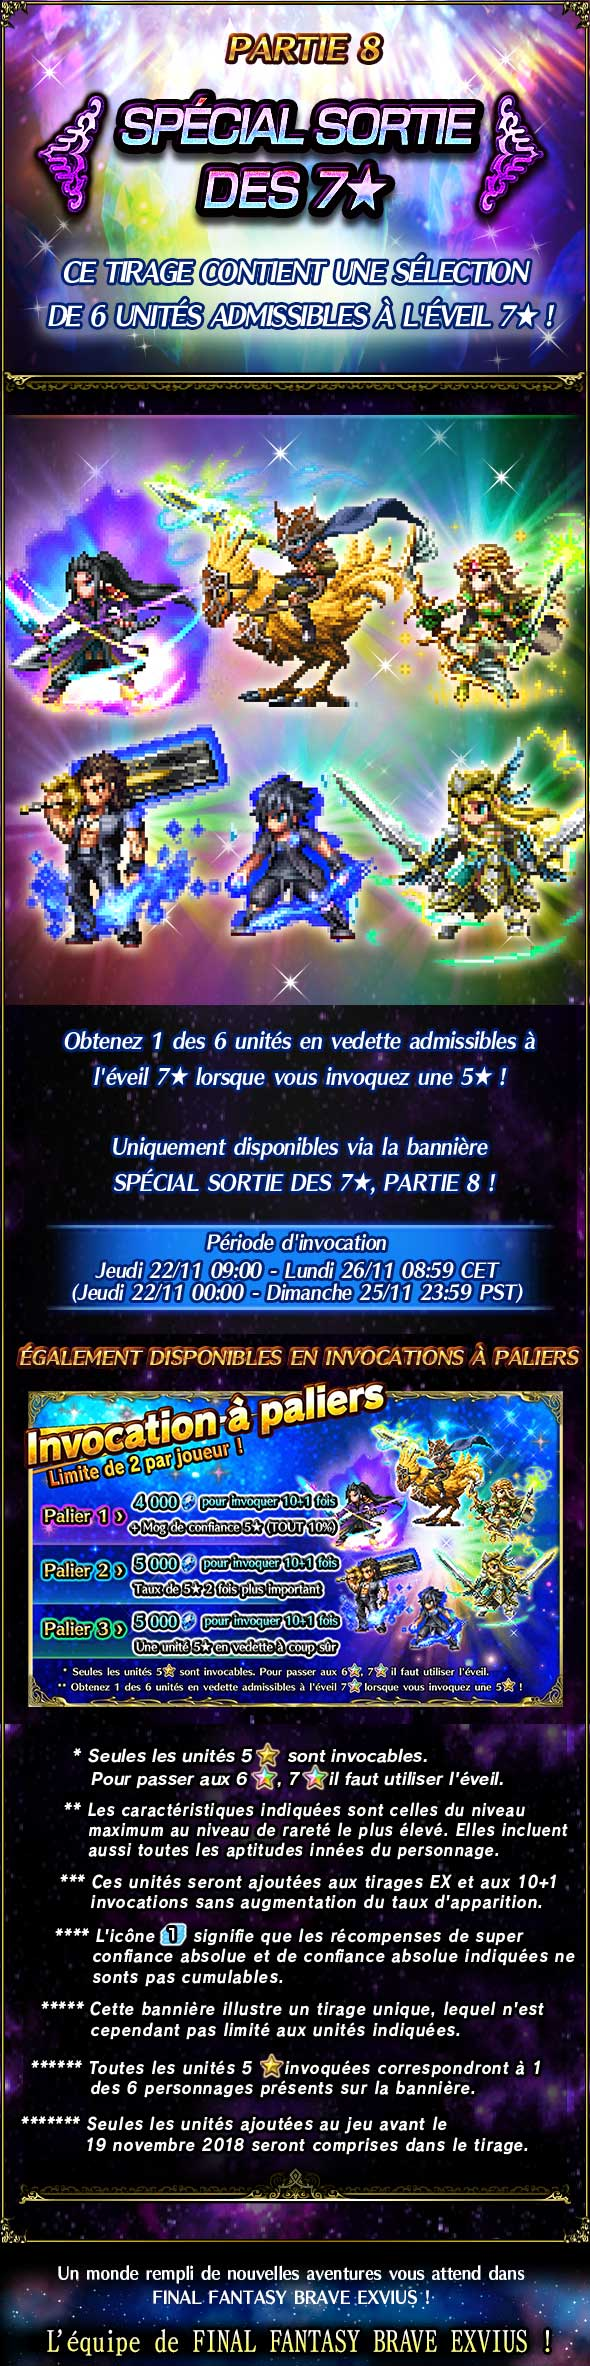 Invocations du moment - FFBE - Speciales sortie des 7* (lot 4) - du 19/11 au 26/11/18 201811137starbatch8